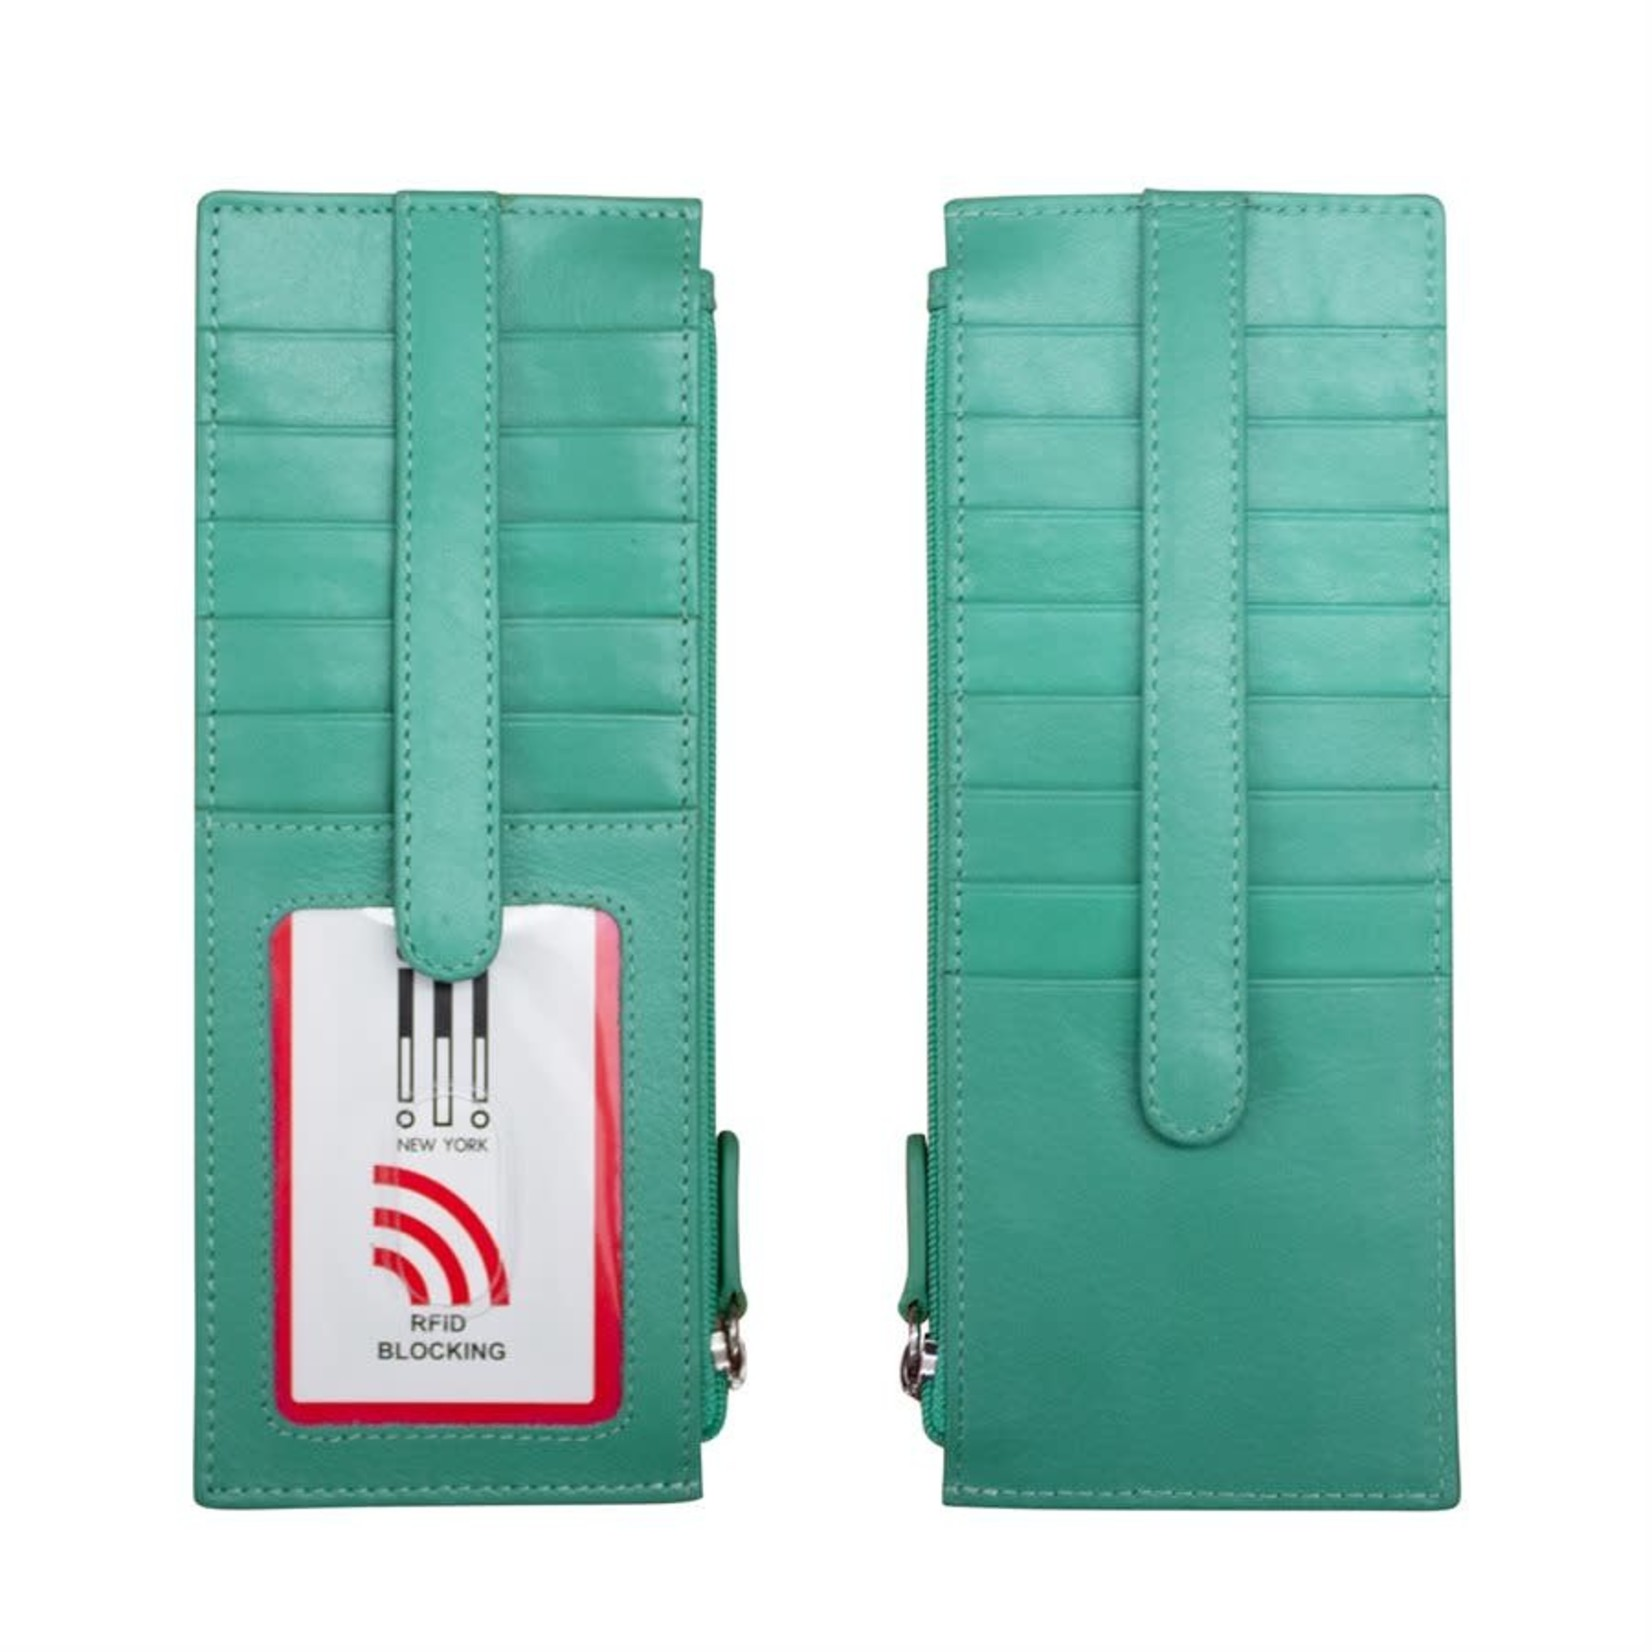 Leather Handbags and Accessories 7800 Turquoise - RFID Card Holder